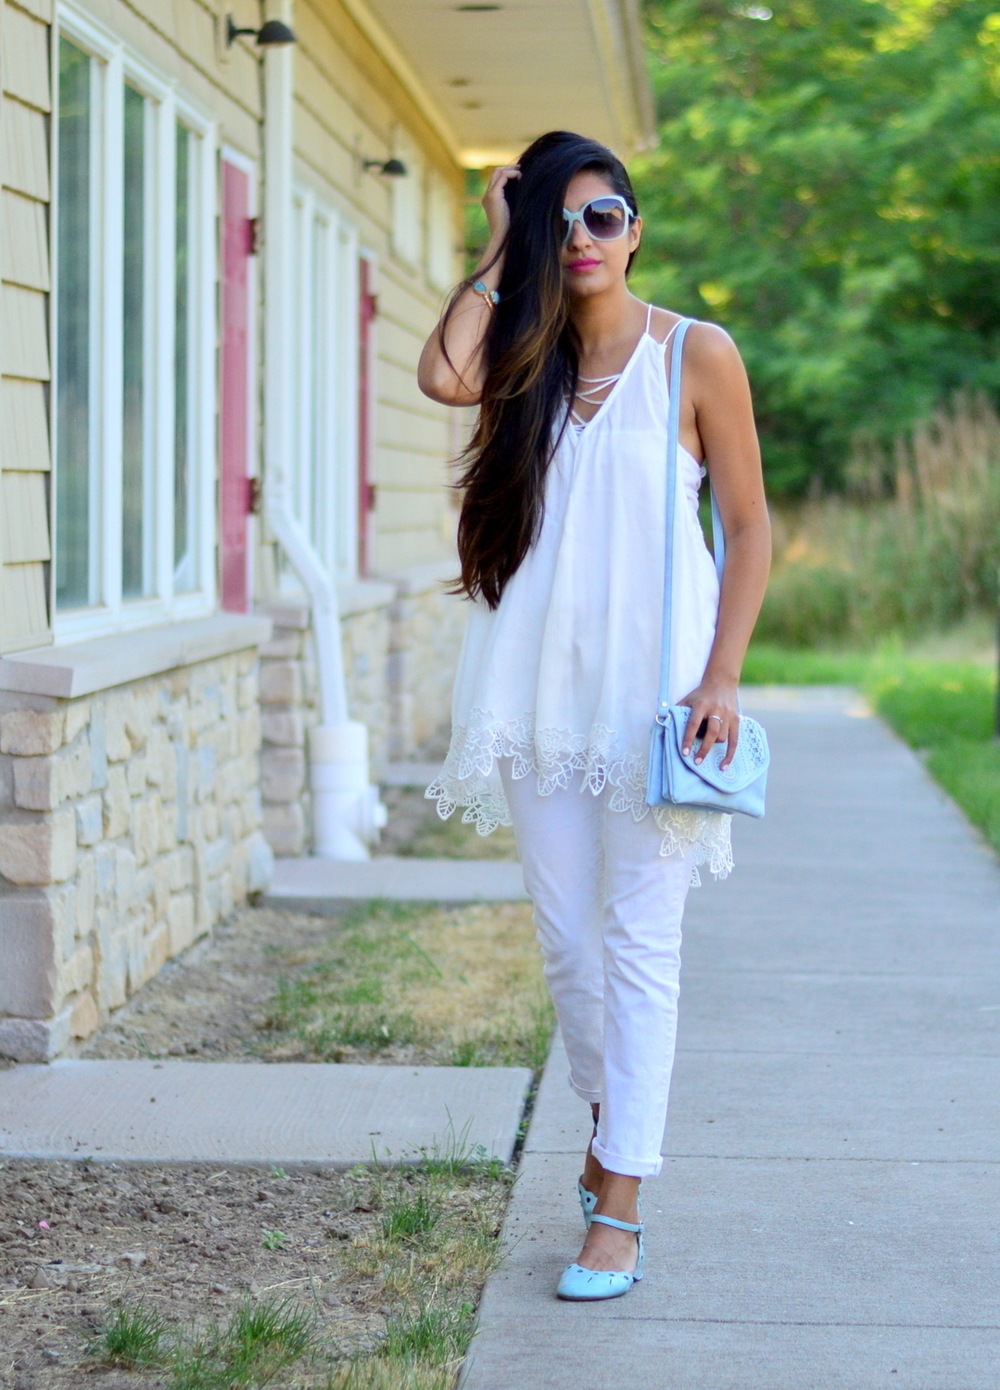 all-white-summer-style-lace-up-details-monochrome-blogger-outfit 5